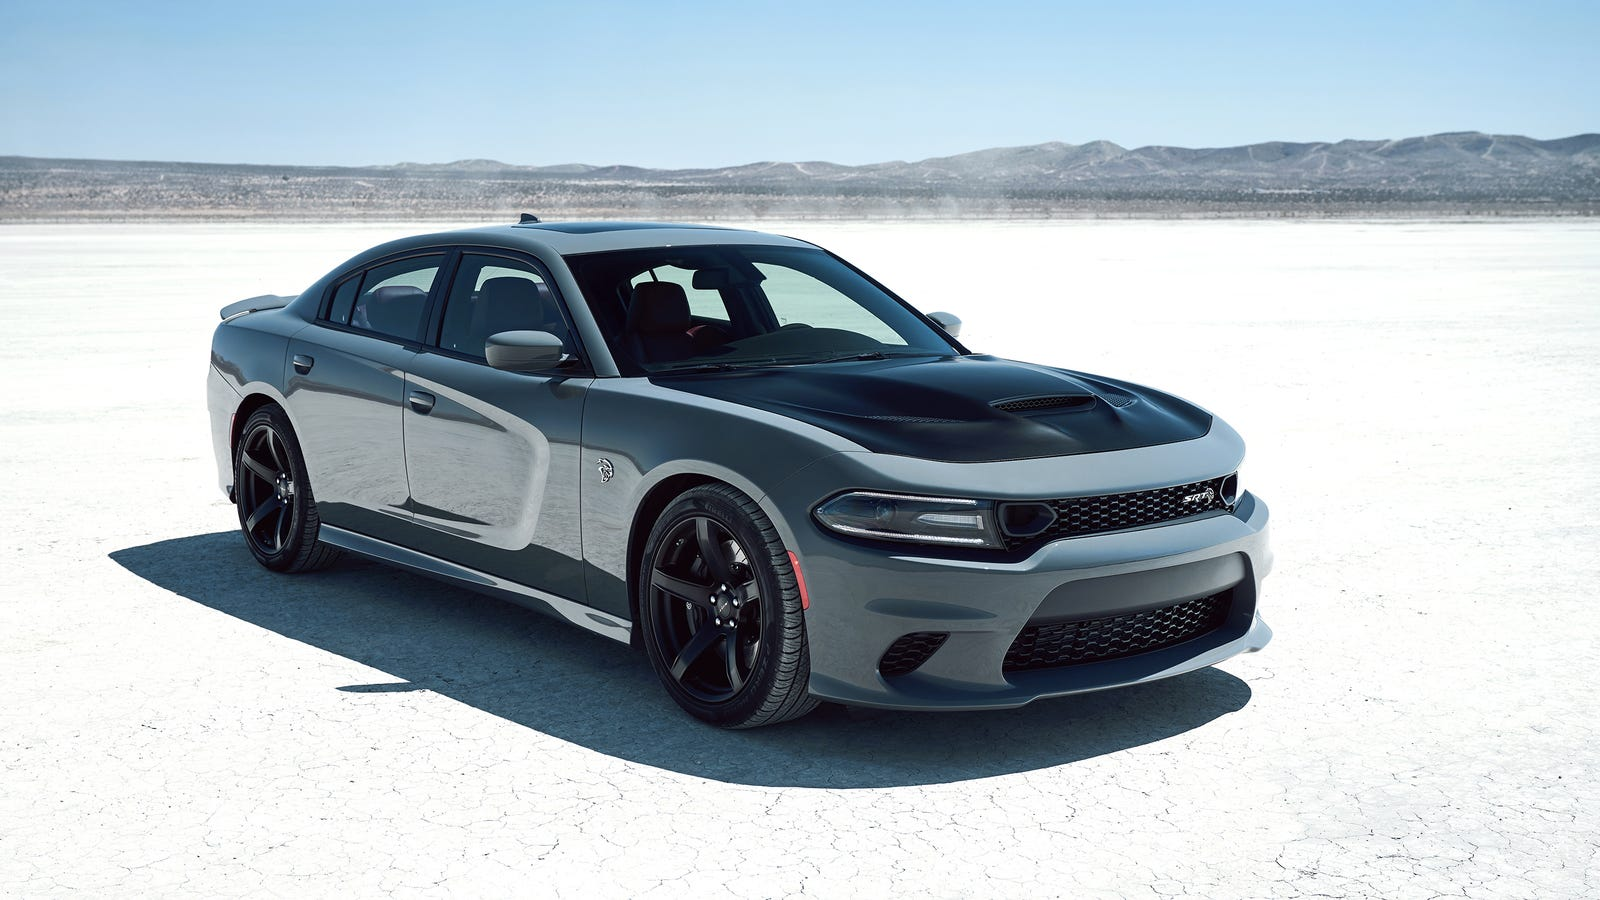 The 2019 Dodge Charger Hellcat Gets Some Cool Features From